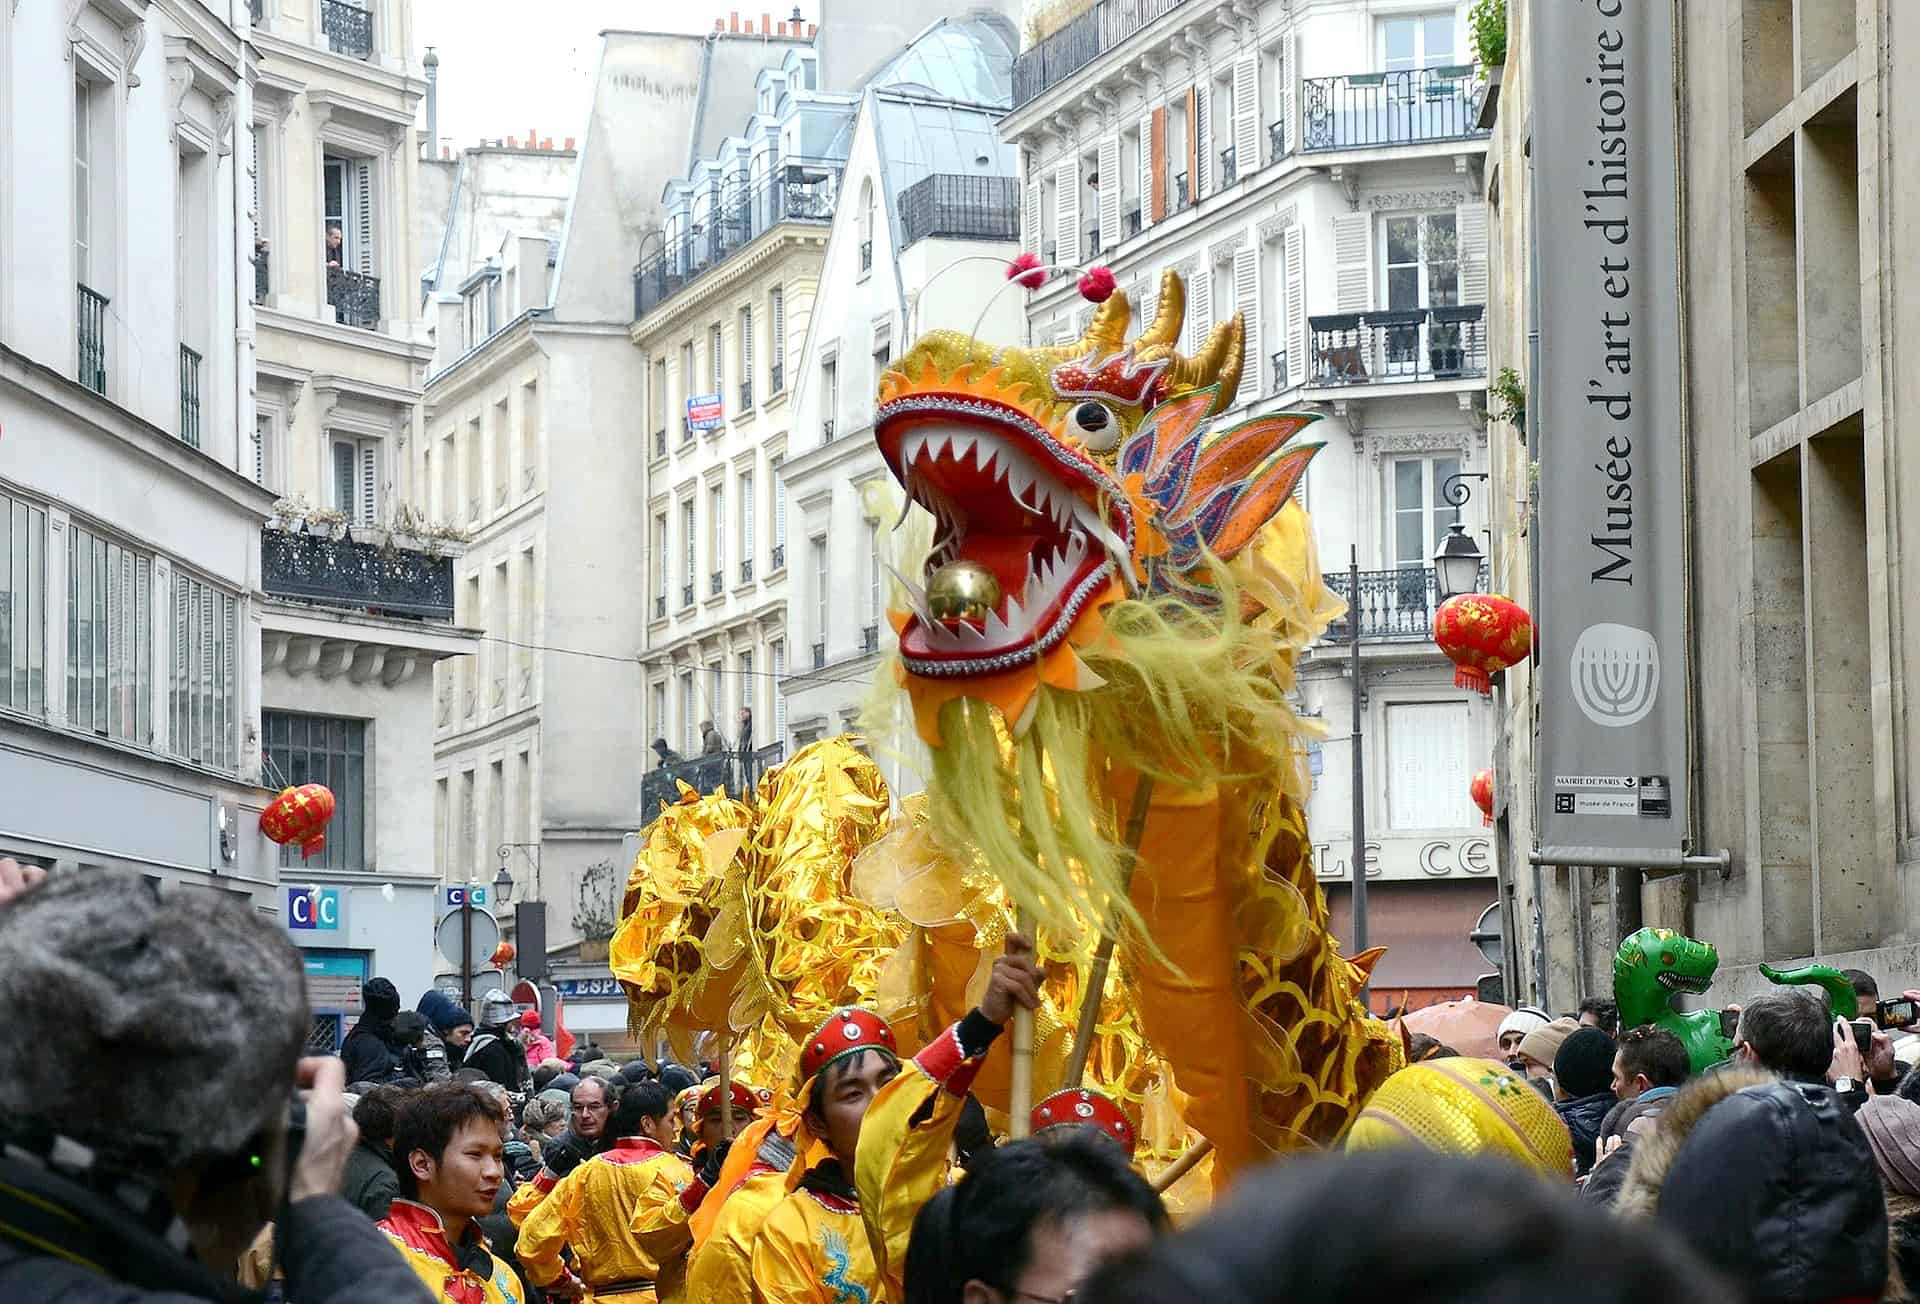 Unusual things to do in Paris - visit Chinatown and see the new years parades! great idea if you're up for some offbeat things to do in Paris. If you are searching for hidden gems in Paris, you shouldn't miss this Parade -hidden gems paris